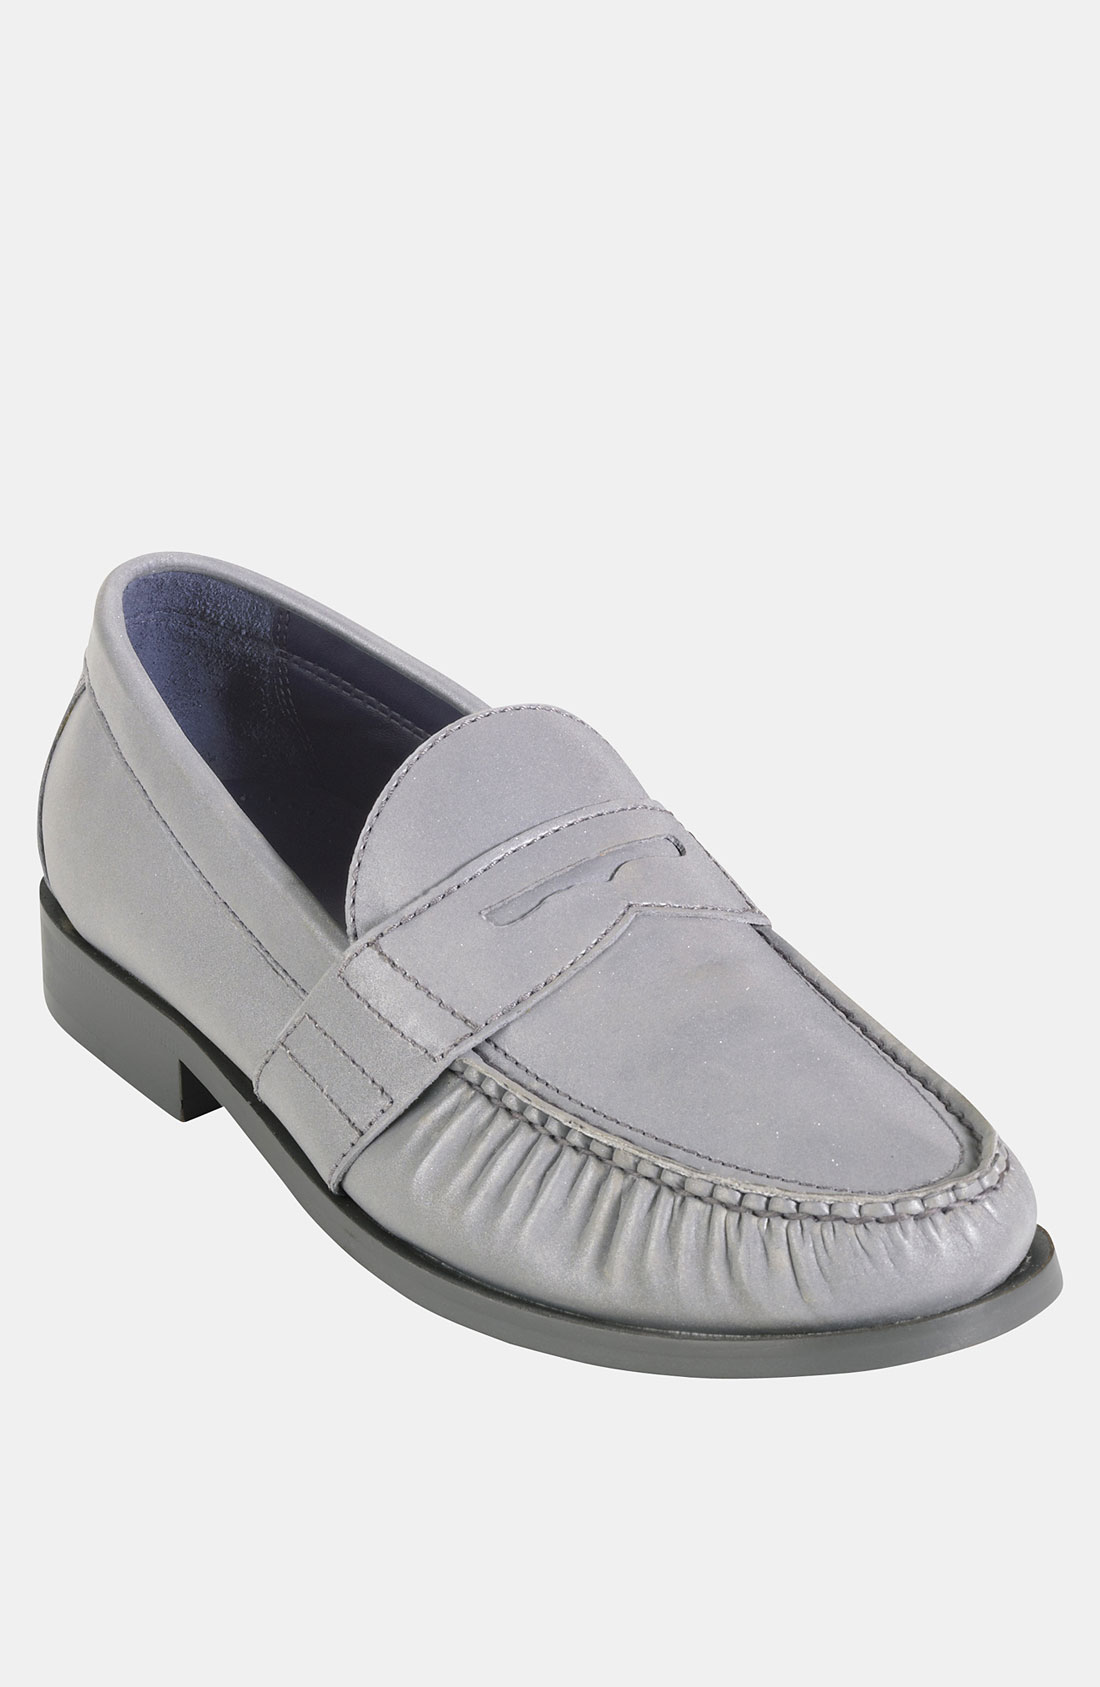 cole haan air monroe penny loafer in silver for men silver reflective lyst. Black Bedroom Furniture Sets. Home Design Ideas